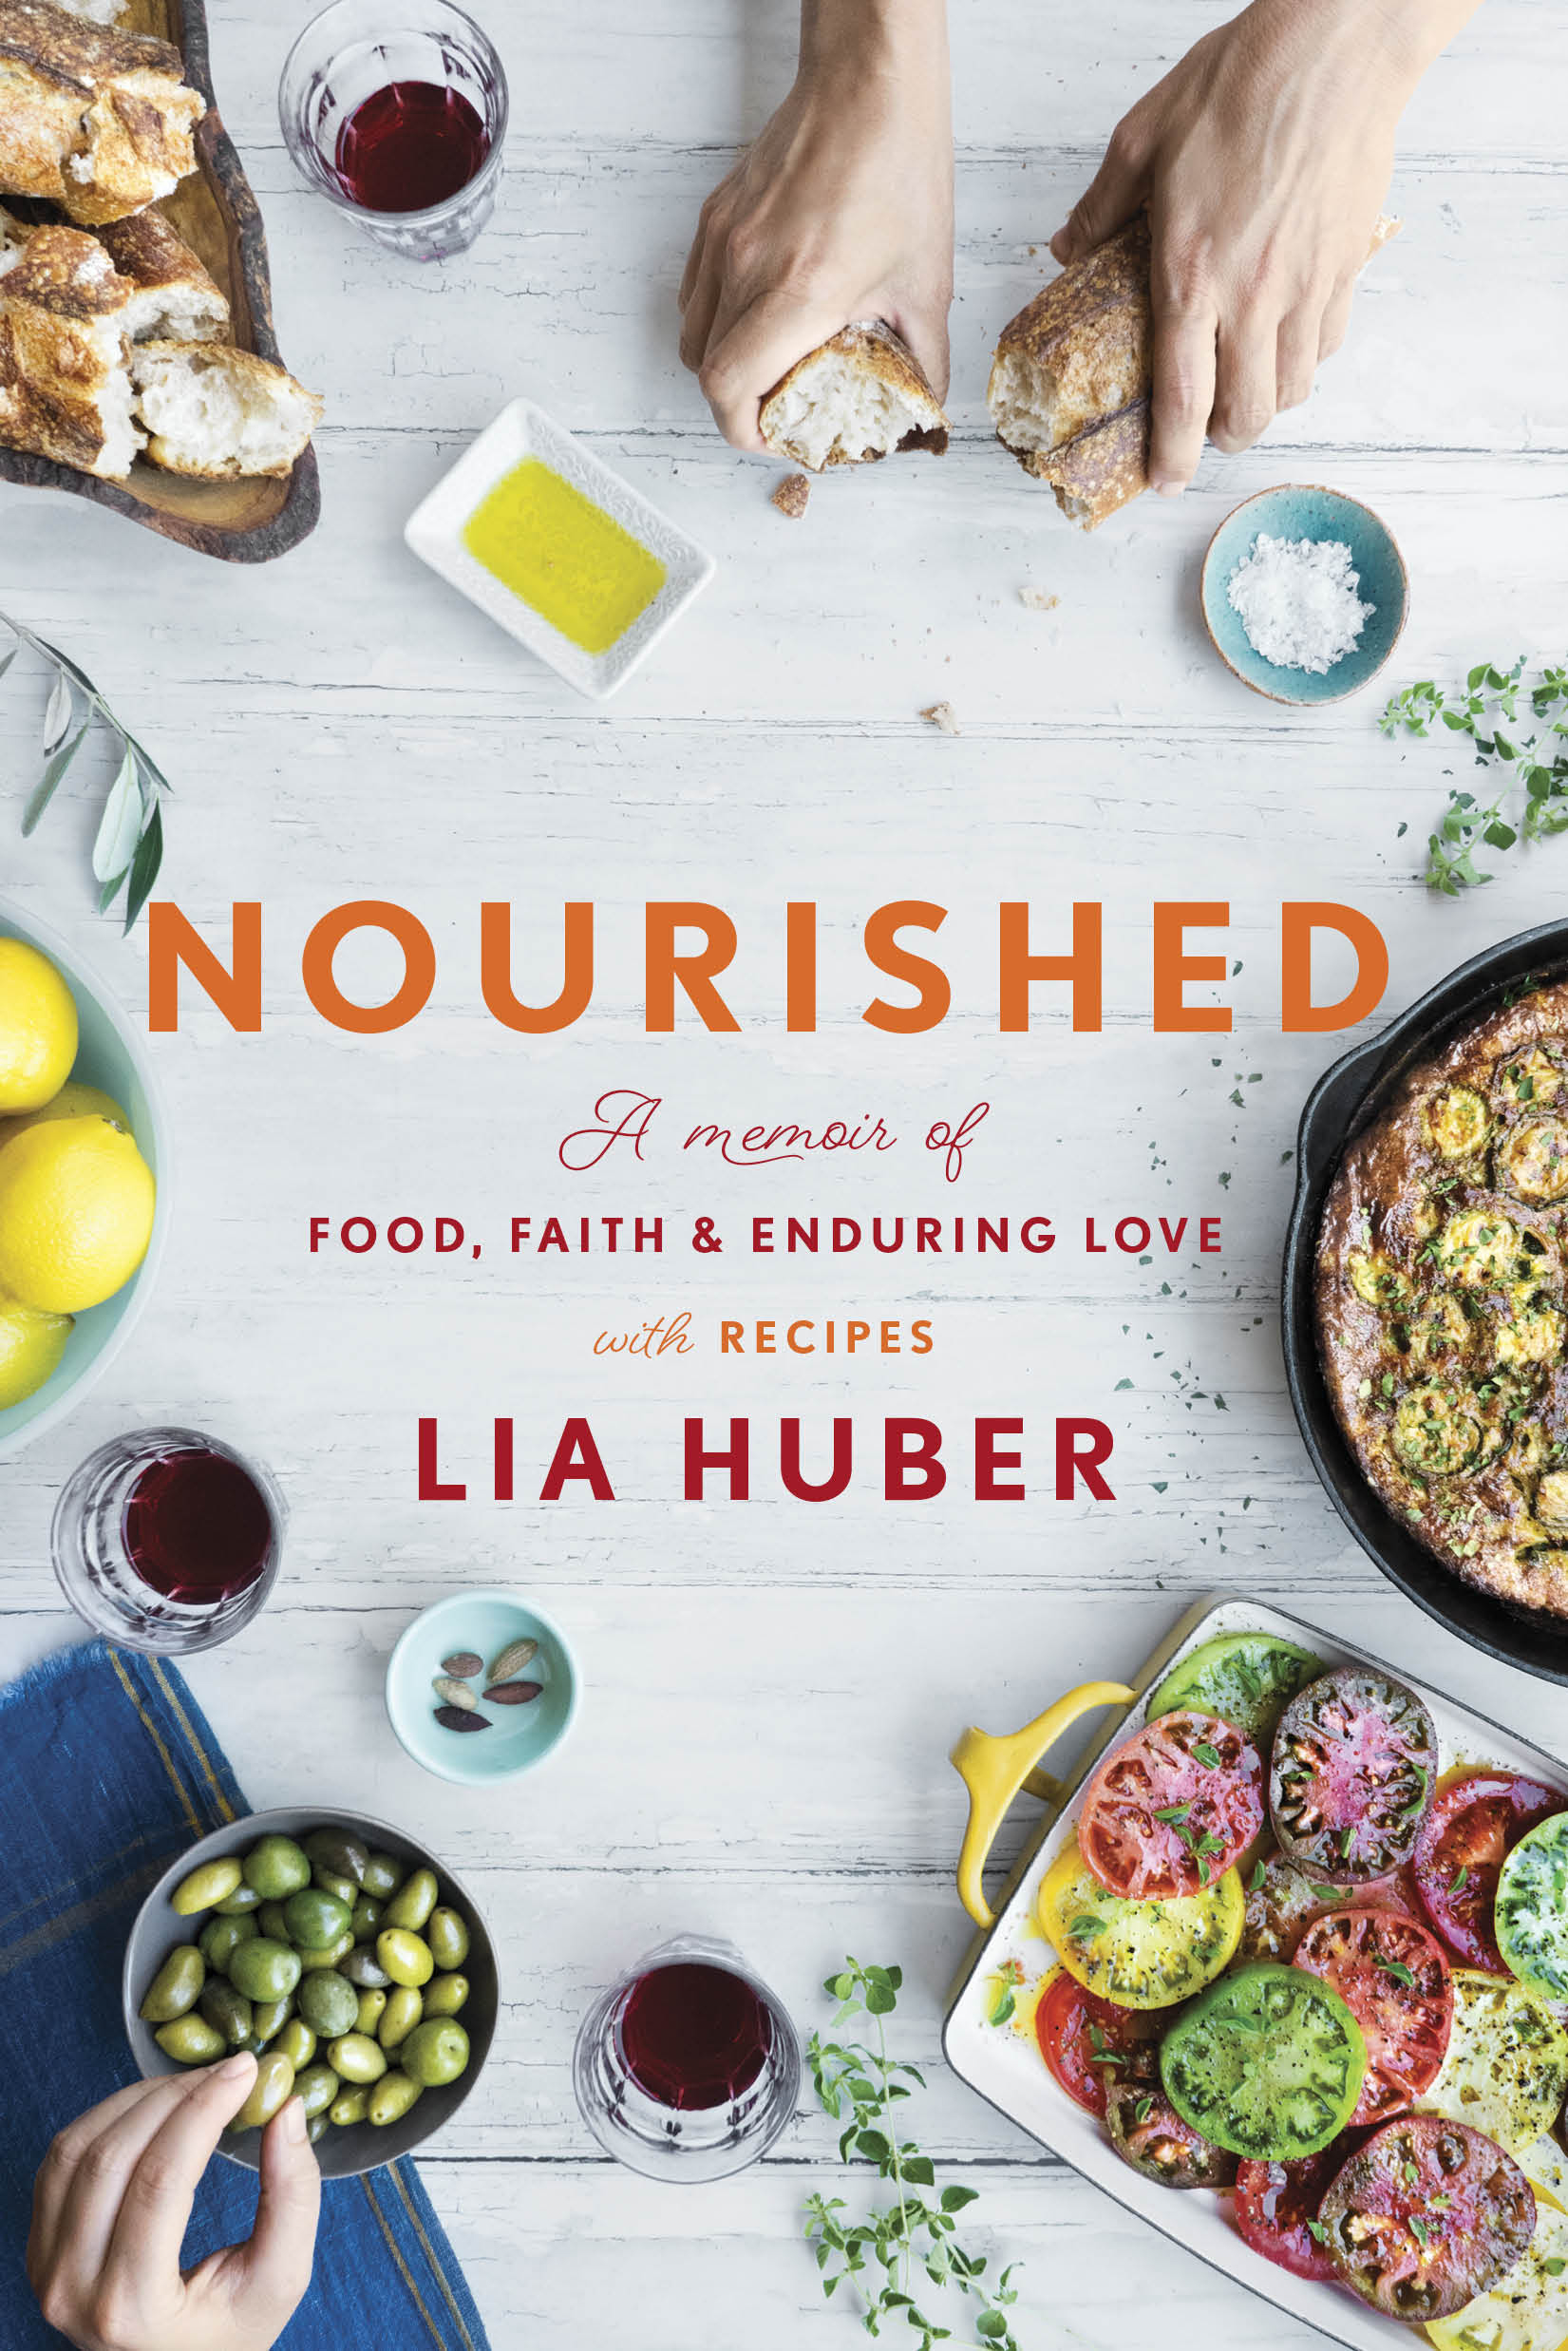 Women in Food: 10 Questions with Lia Huber, Author of Nourished